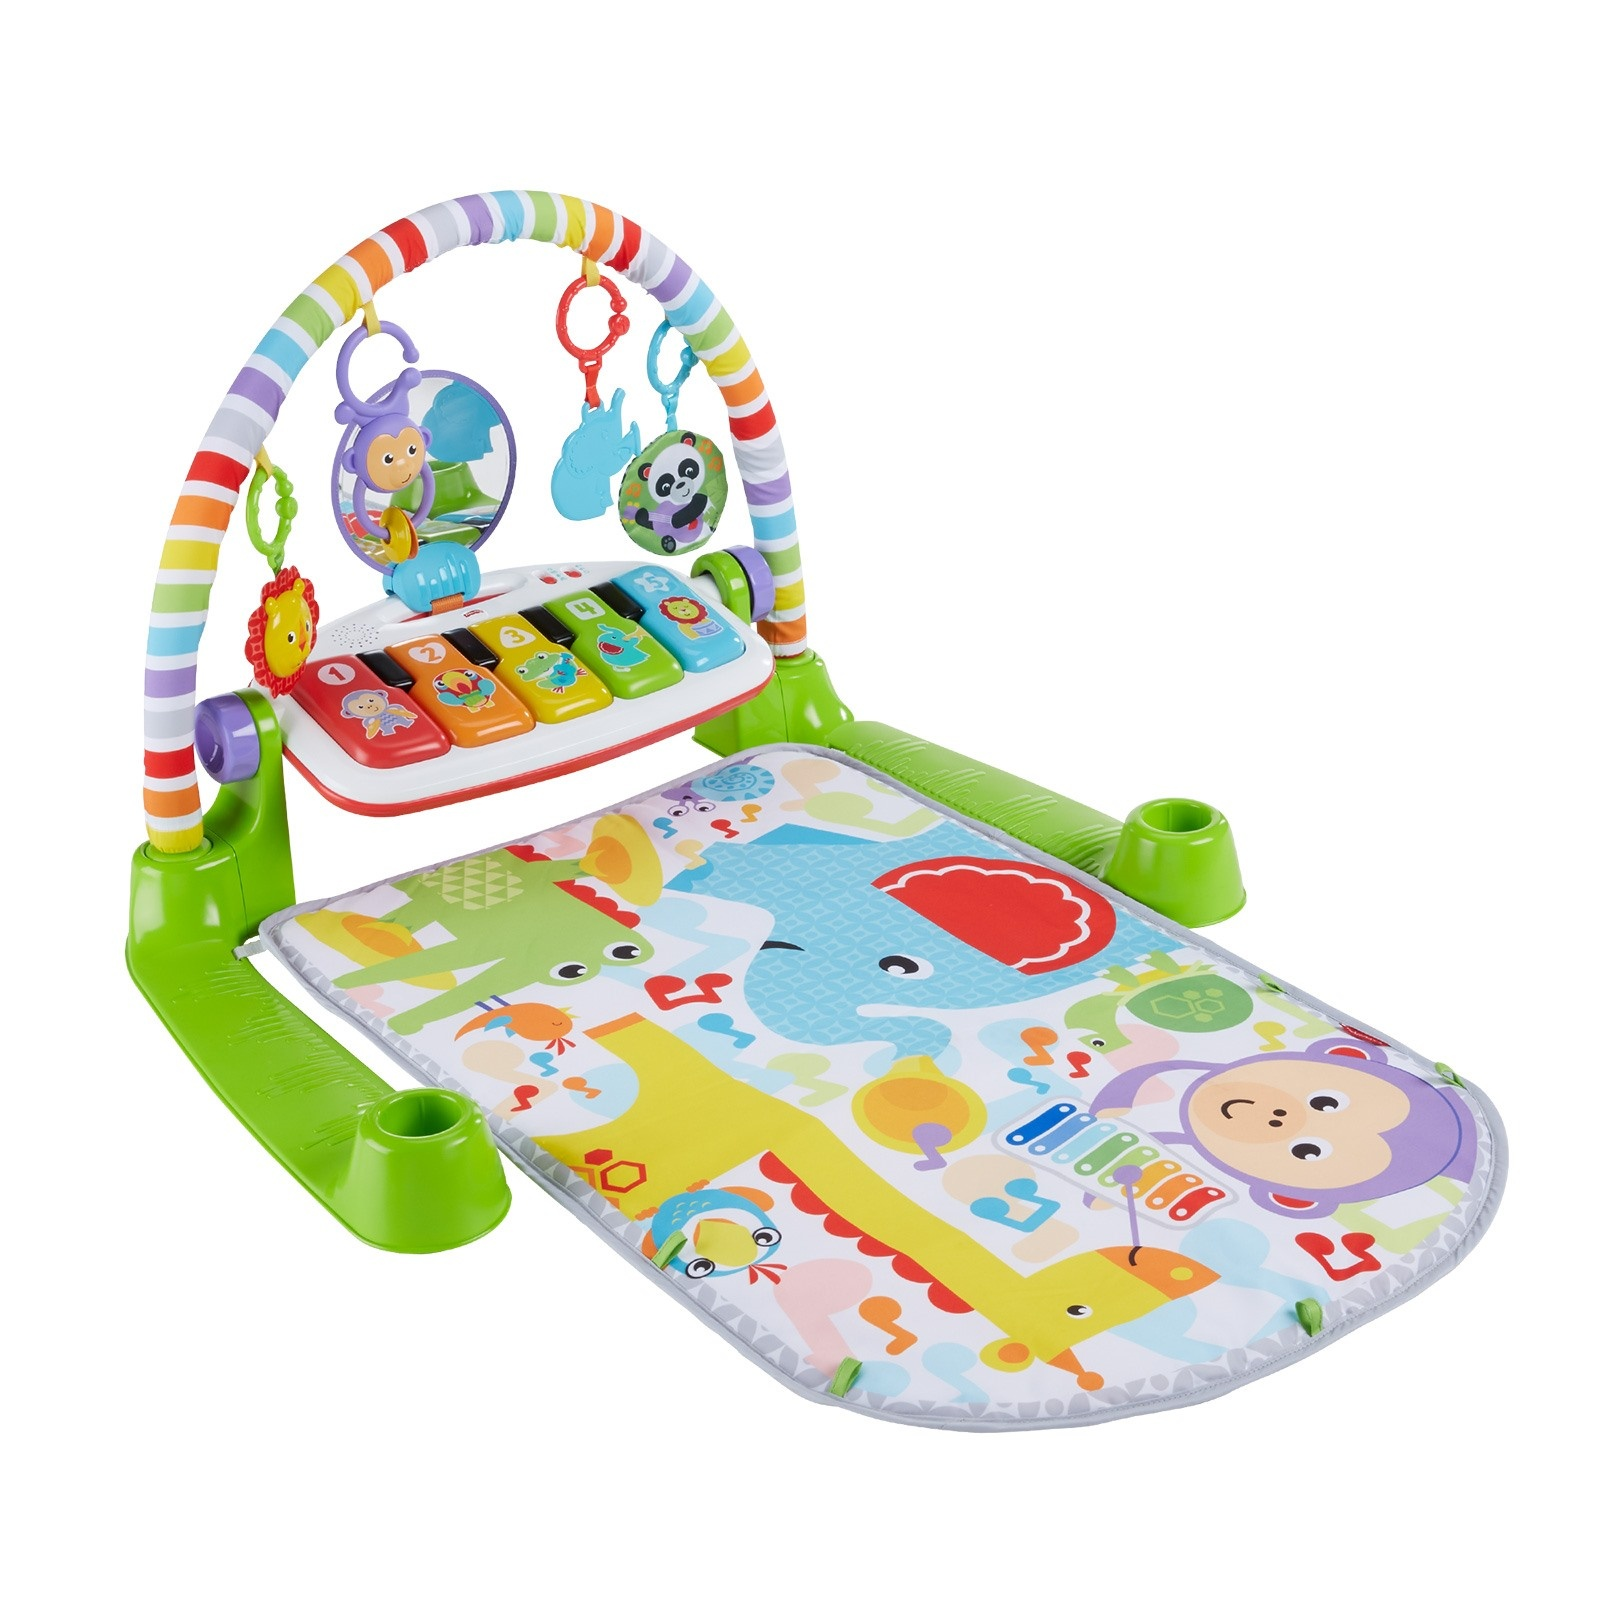 Ebebek Fisher Price Turkish Deluxe Gym Center With Piano